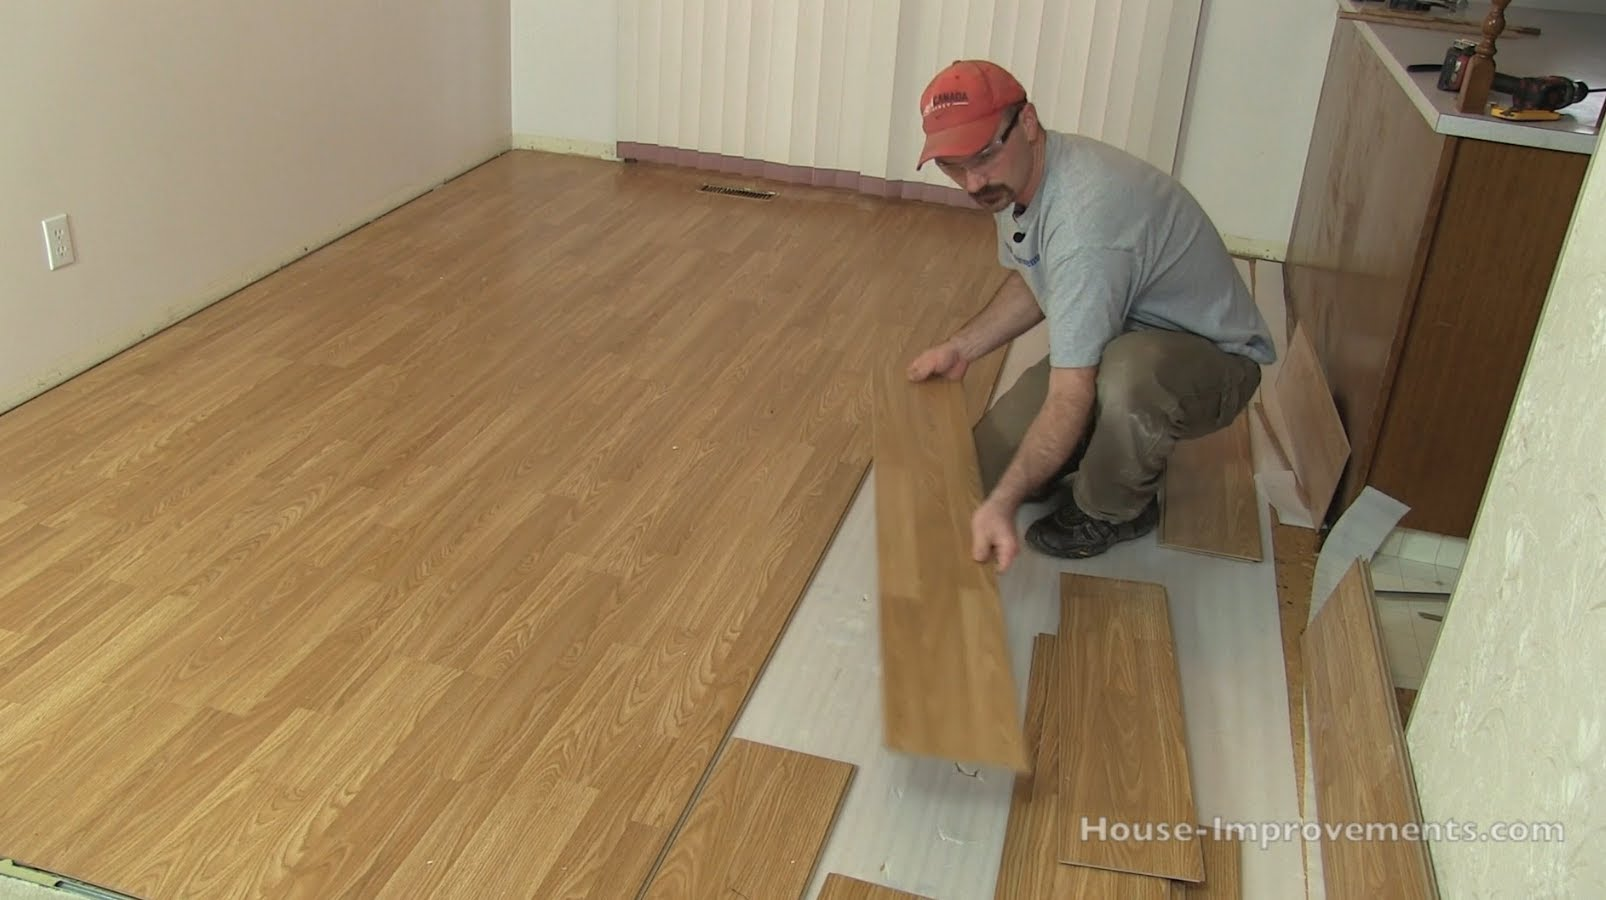 How to remove laminate flooring june 2018 toolversed for Carpet and laminate flooring